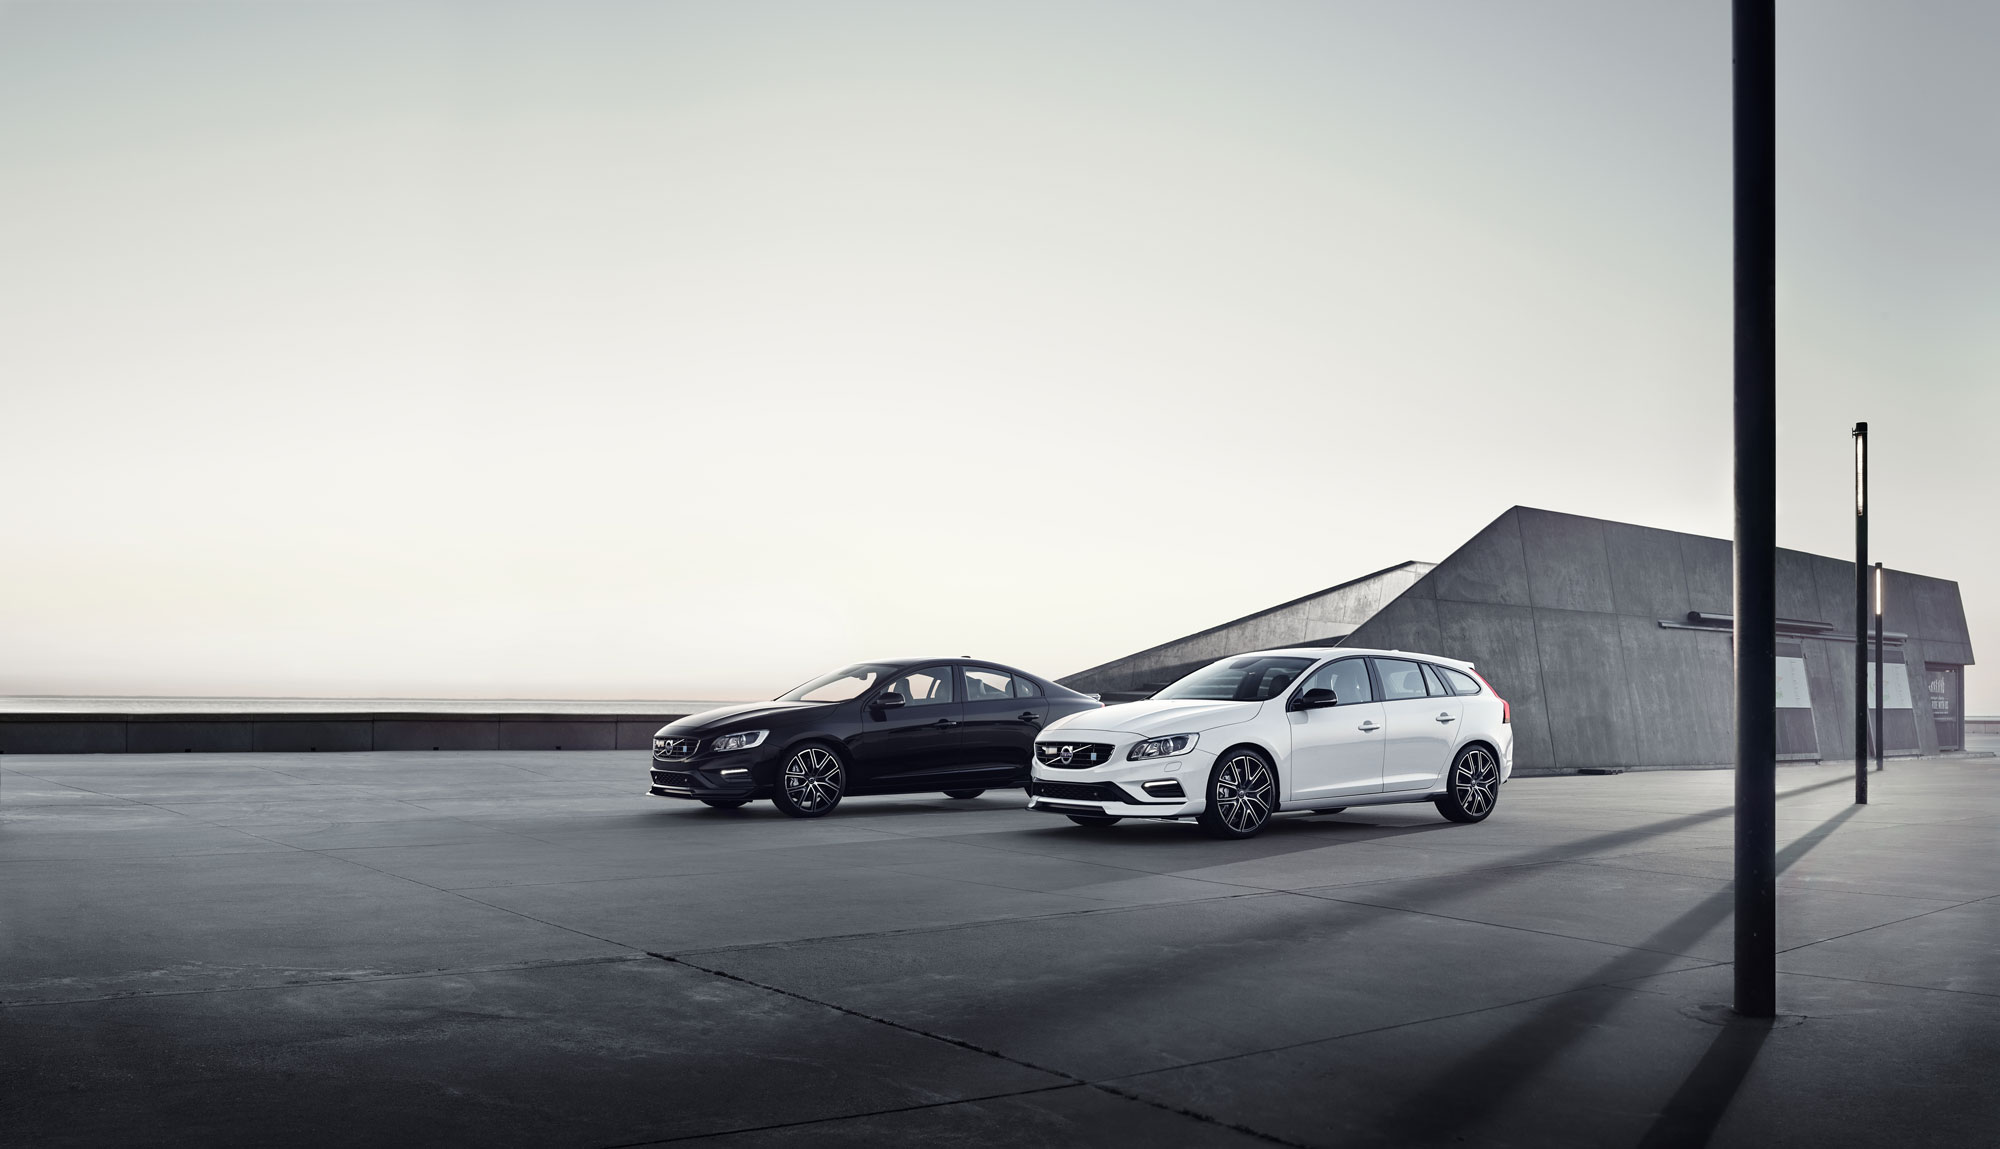 Dark and white Volvos parked on concrete. In background a bit of concrete building and sky